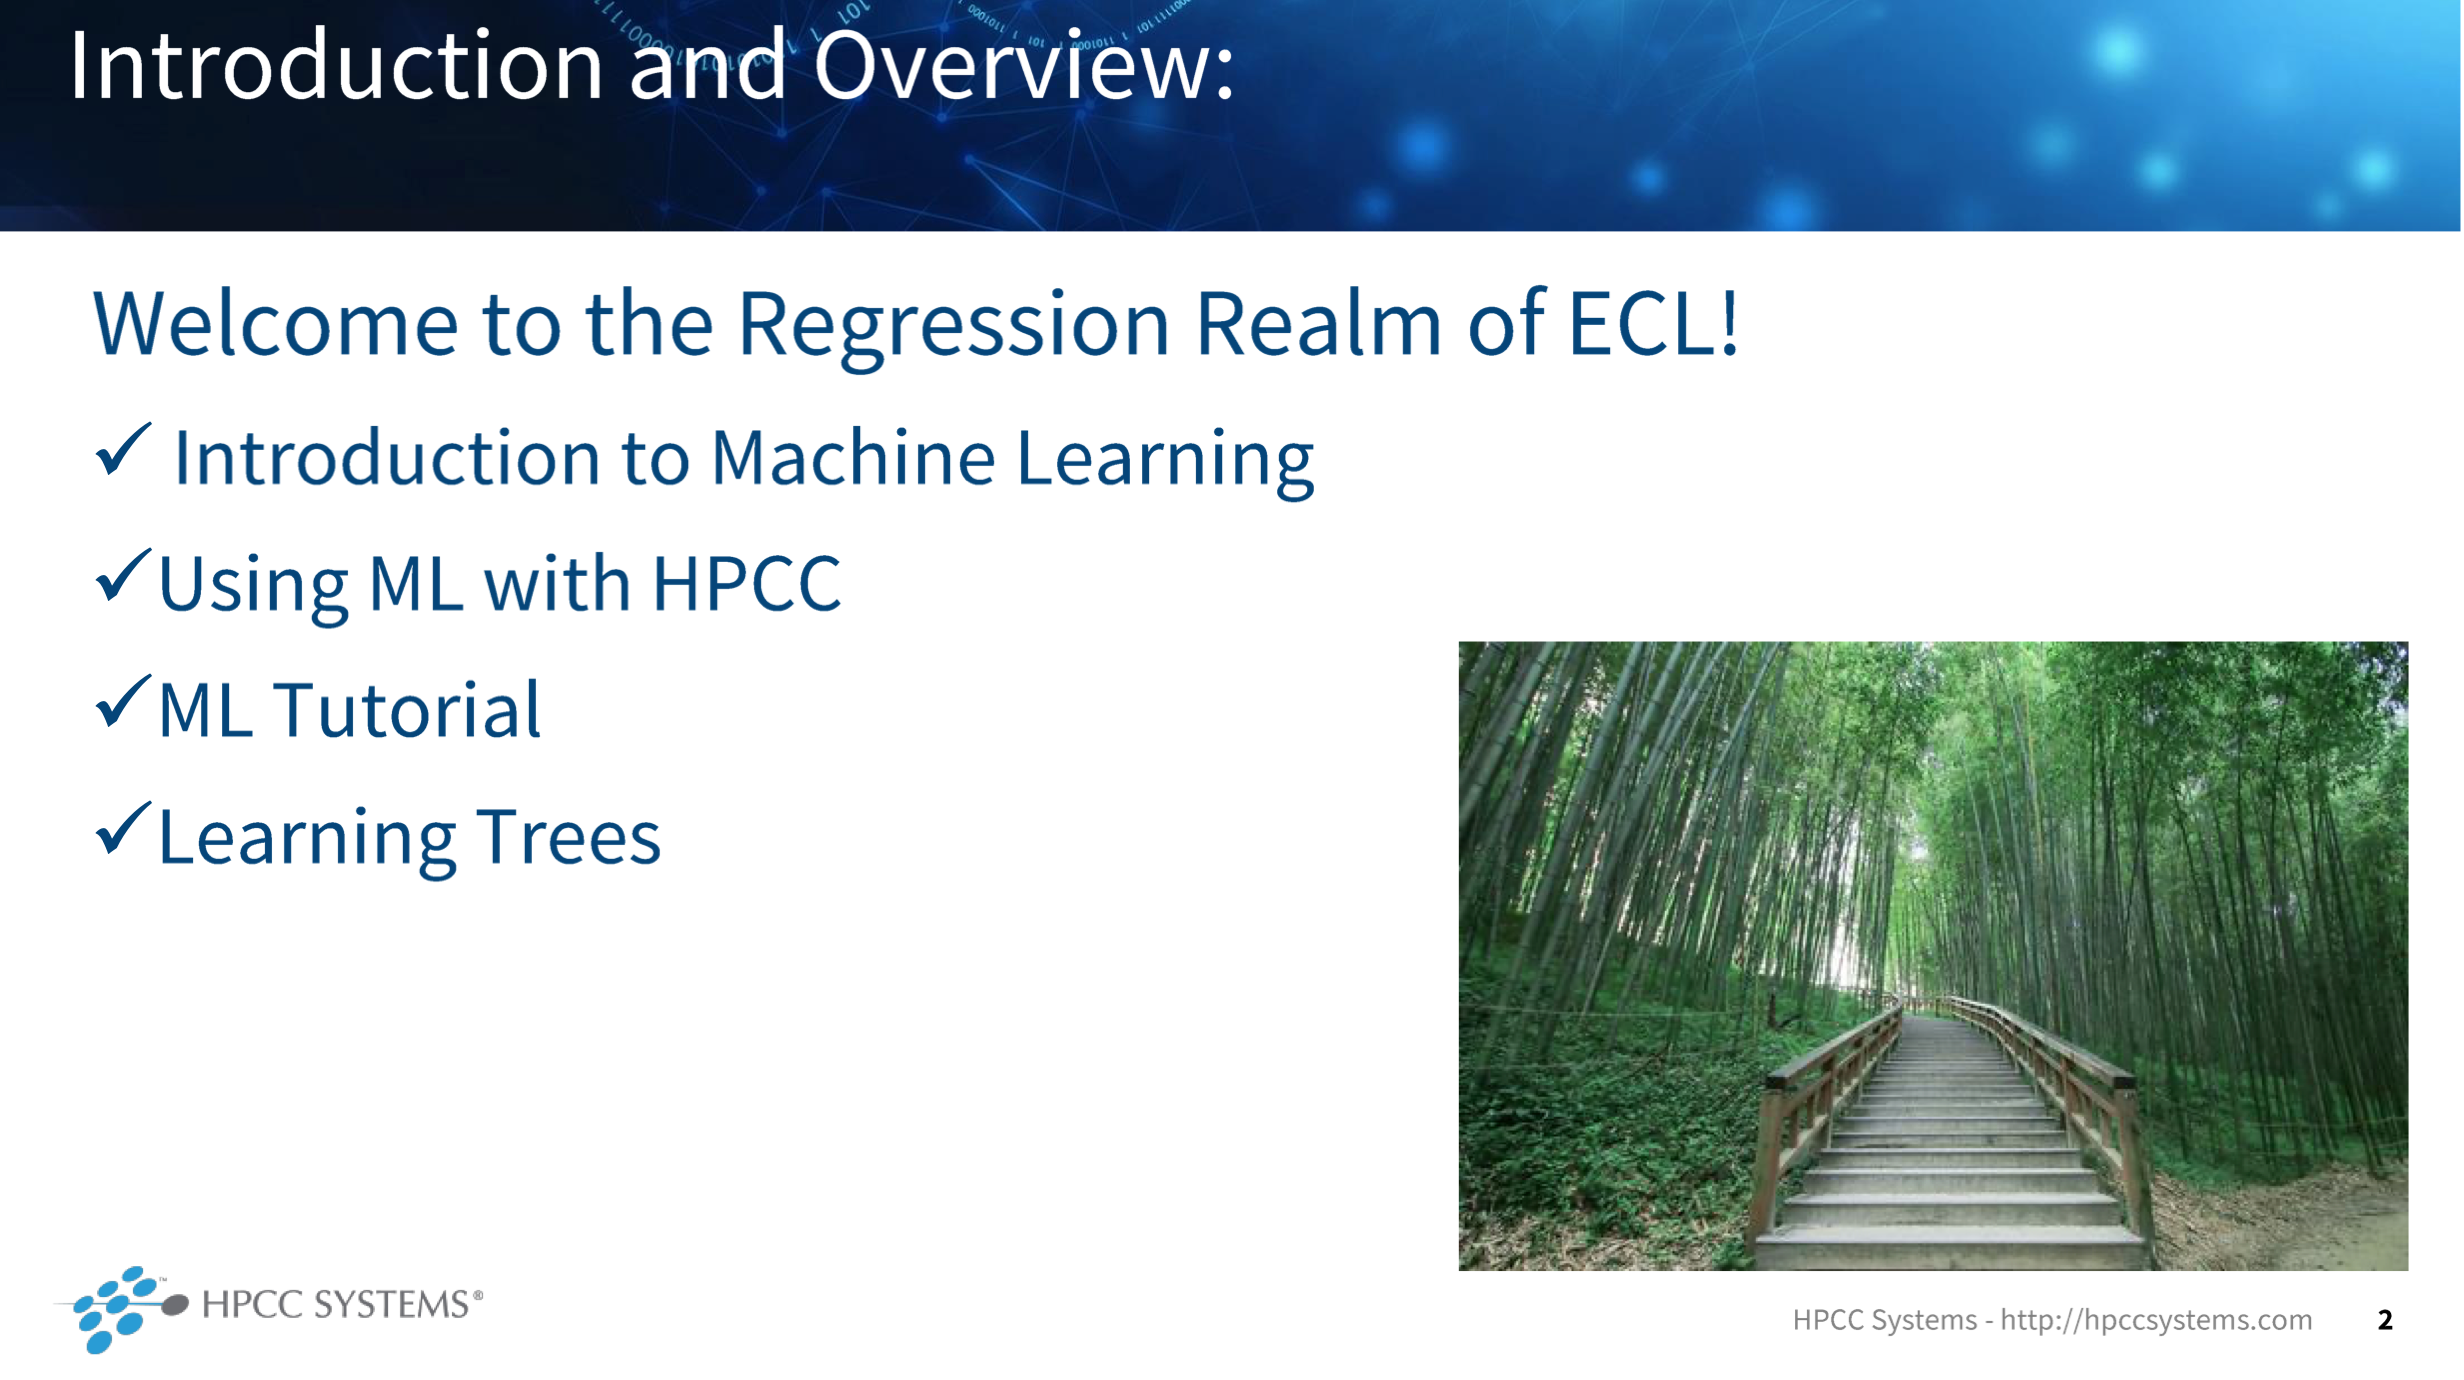 Image showing the course content for The Regression Realm